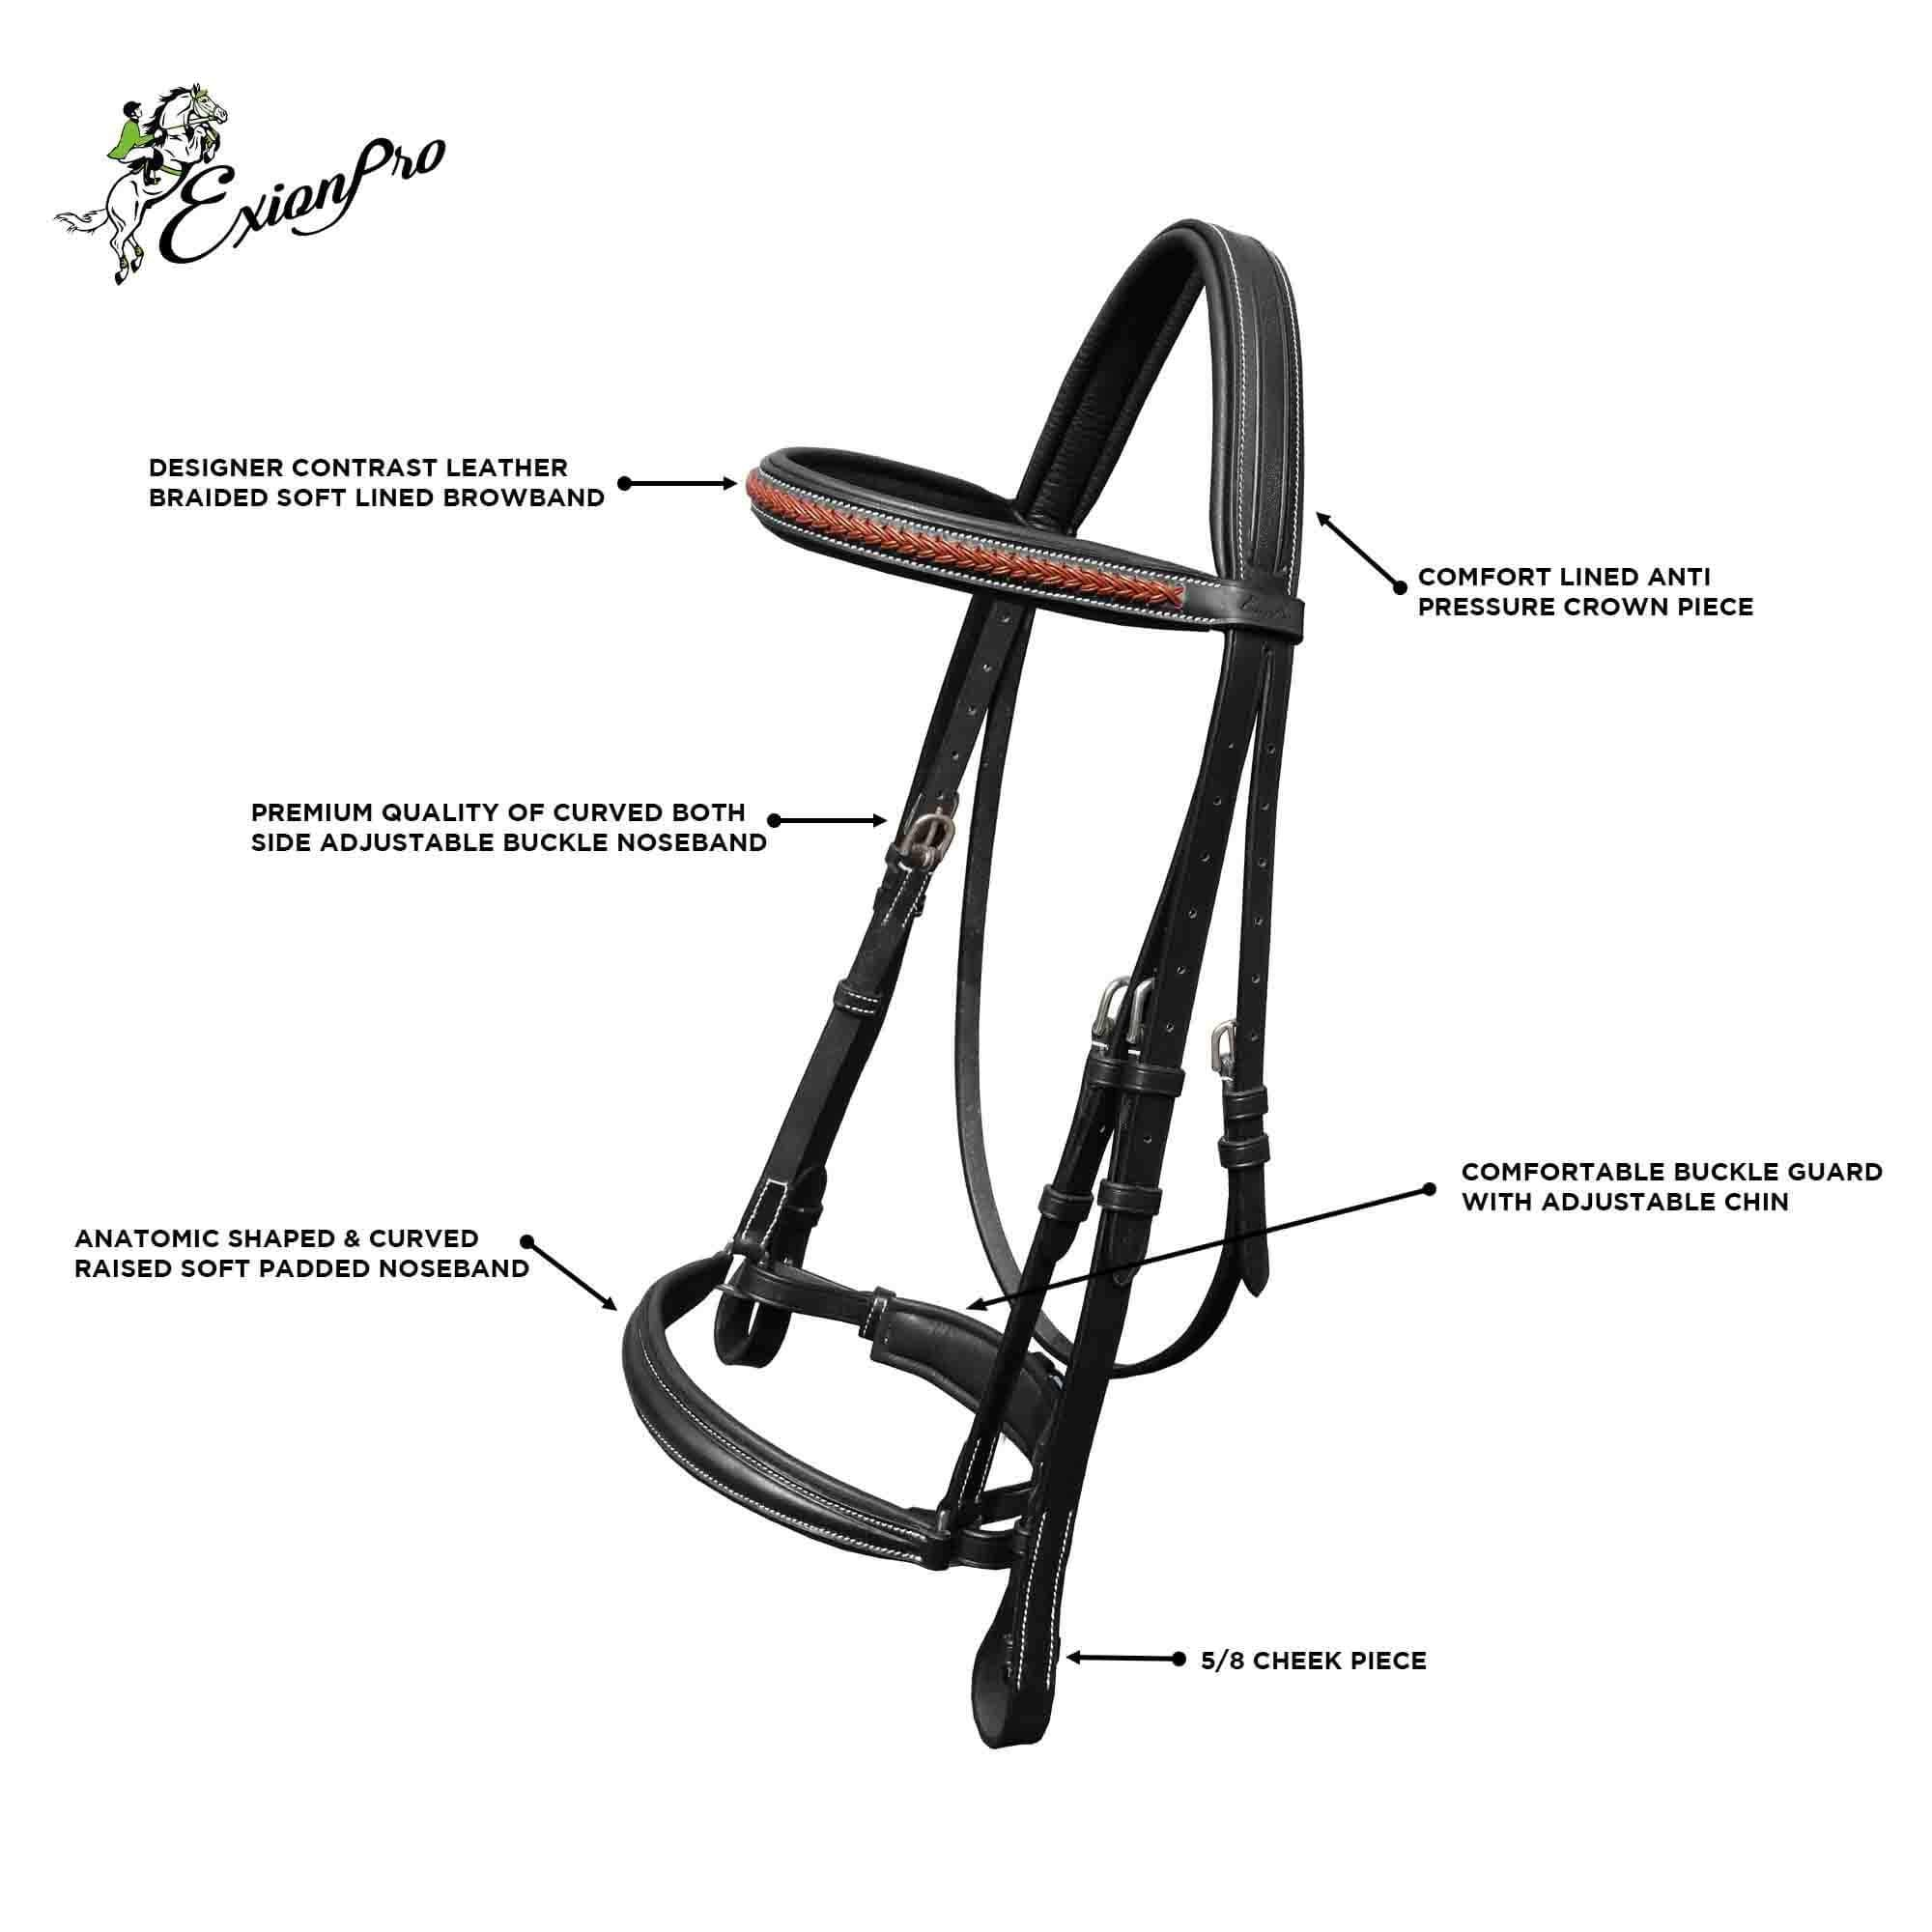 Leather Bridles for Horses English Horse Tack ExionPro Anti Pressure Crownpiece Round Raised Soft Padded Browband /& Noseband with Rubber Reins Equine Tack English Bridle